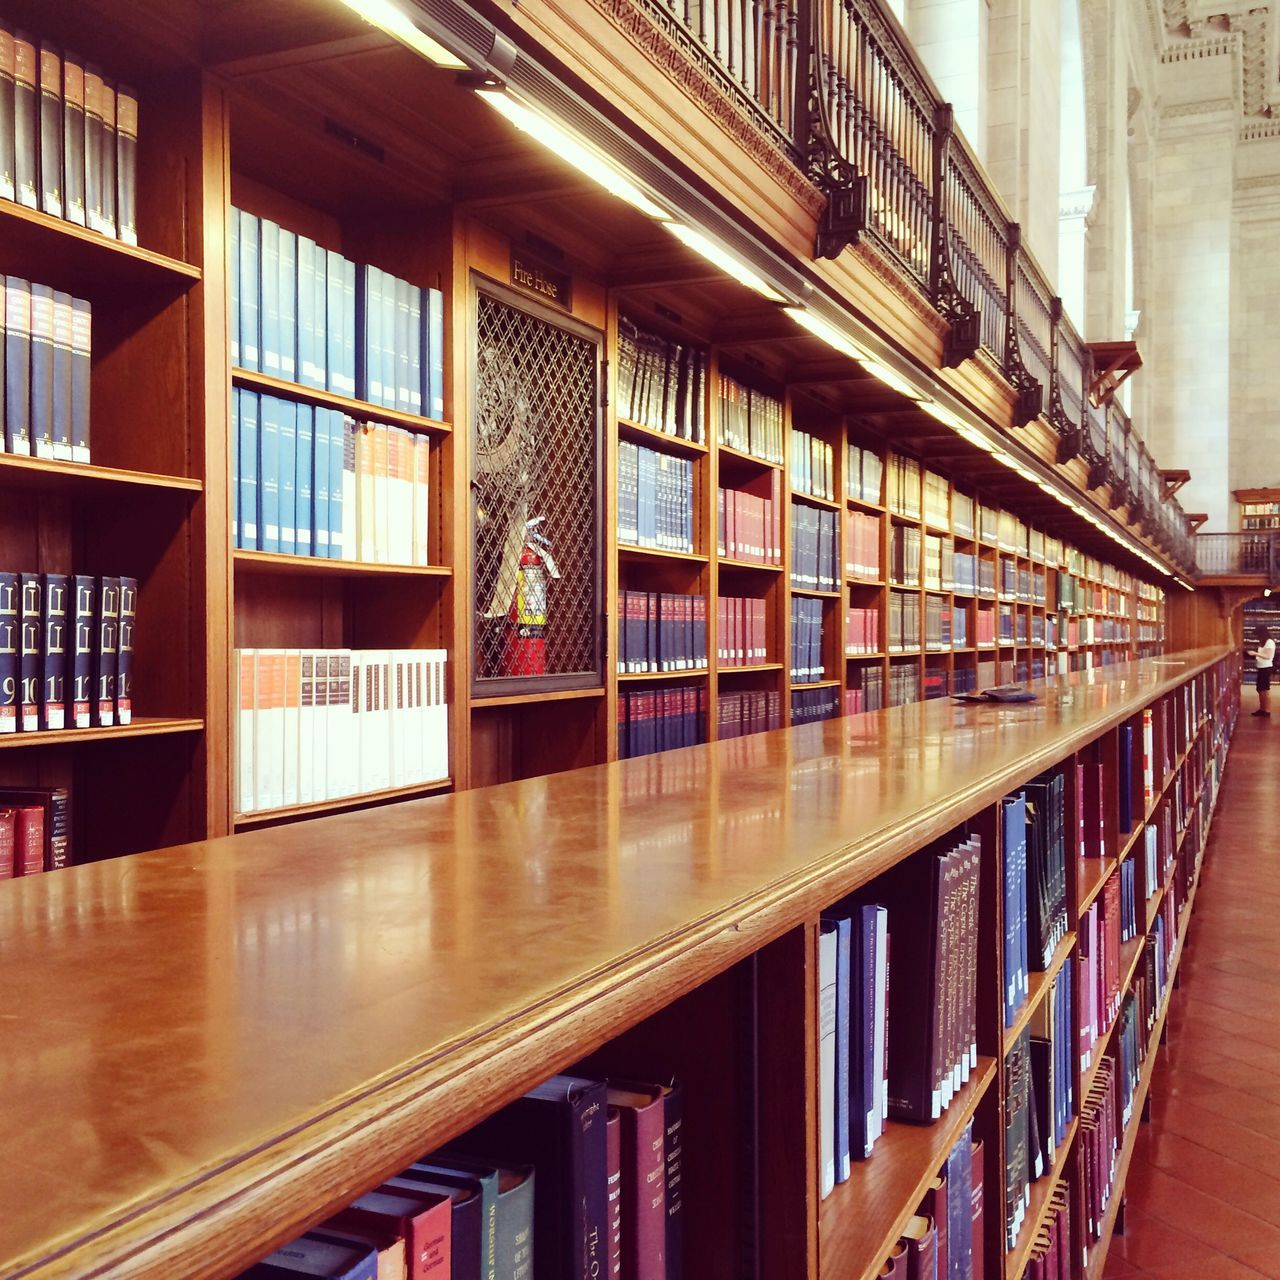 book, bookshelf, library, education, shelf, indoors, university, learning, literature, wood - material, wisdom, research, no people, architecture, archives, day